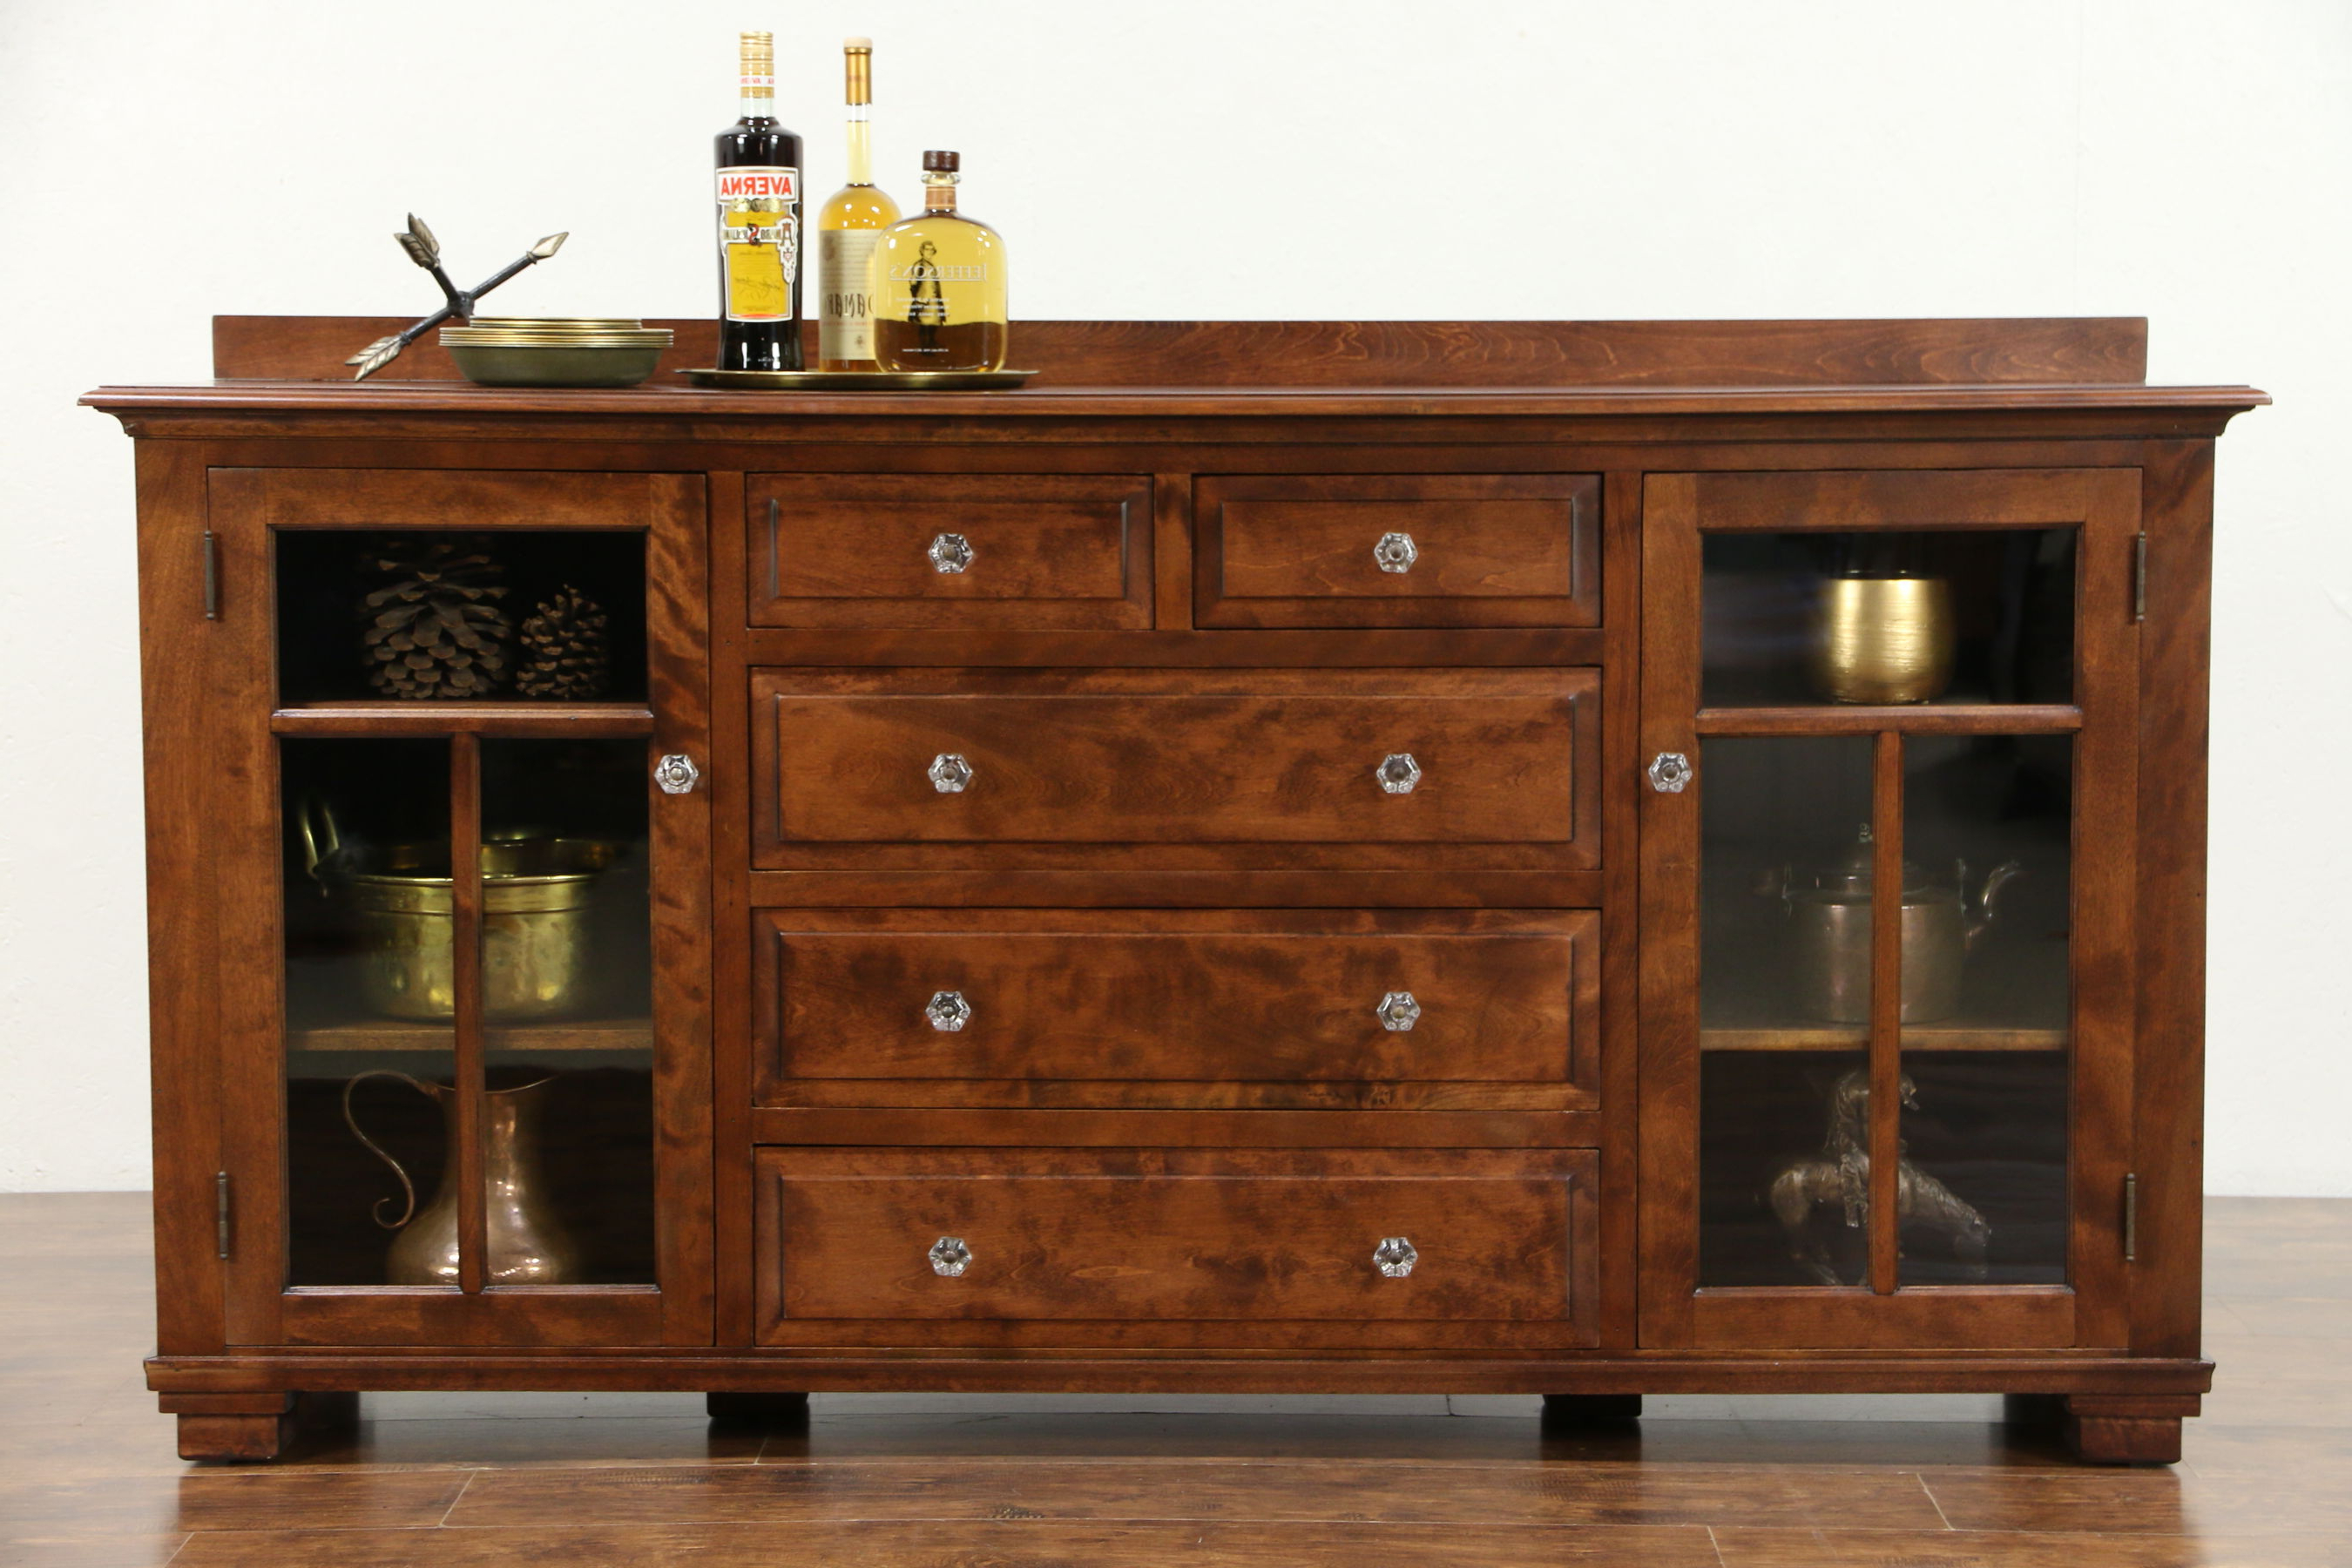 Newest Sold – Craftsman 1910 Antique Sideboard Cabinet, Tv Console – Harp With Regard To Craftsman Sideboards (View 15 of 20)